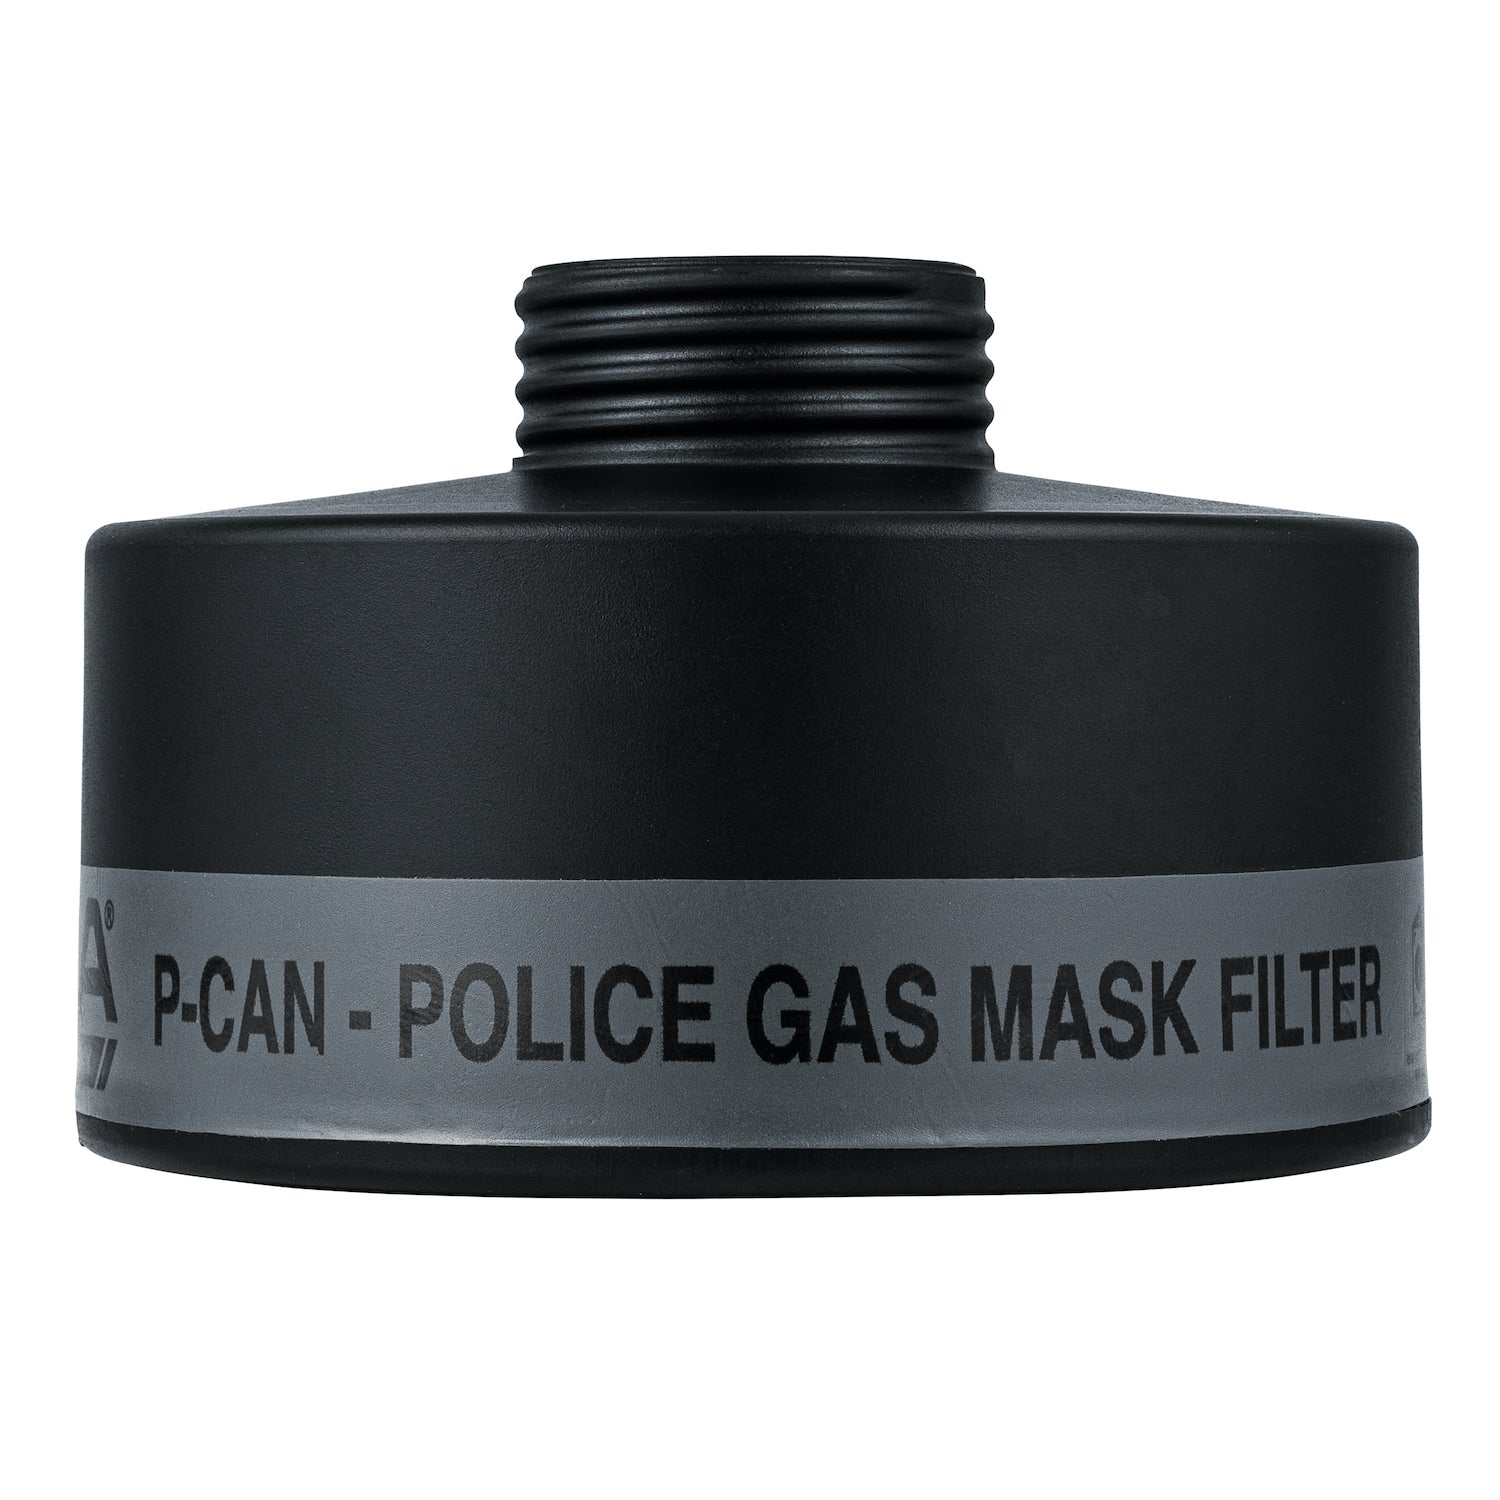 P-CAN Police Gas Mask Filter